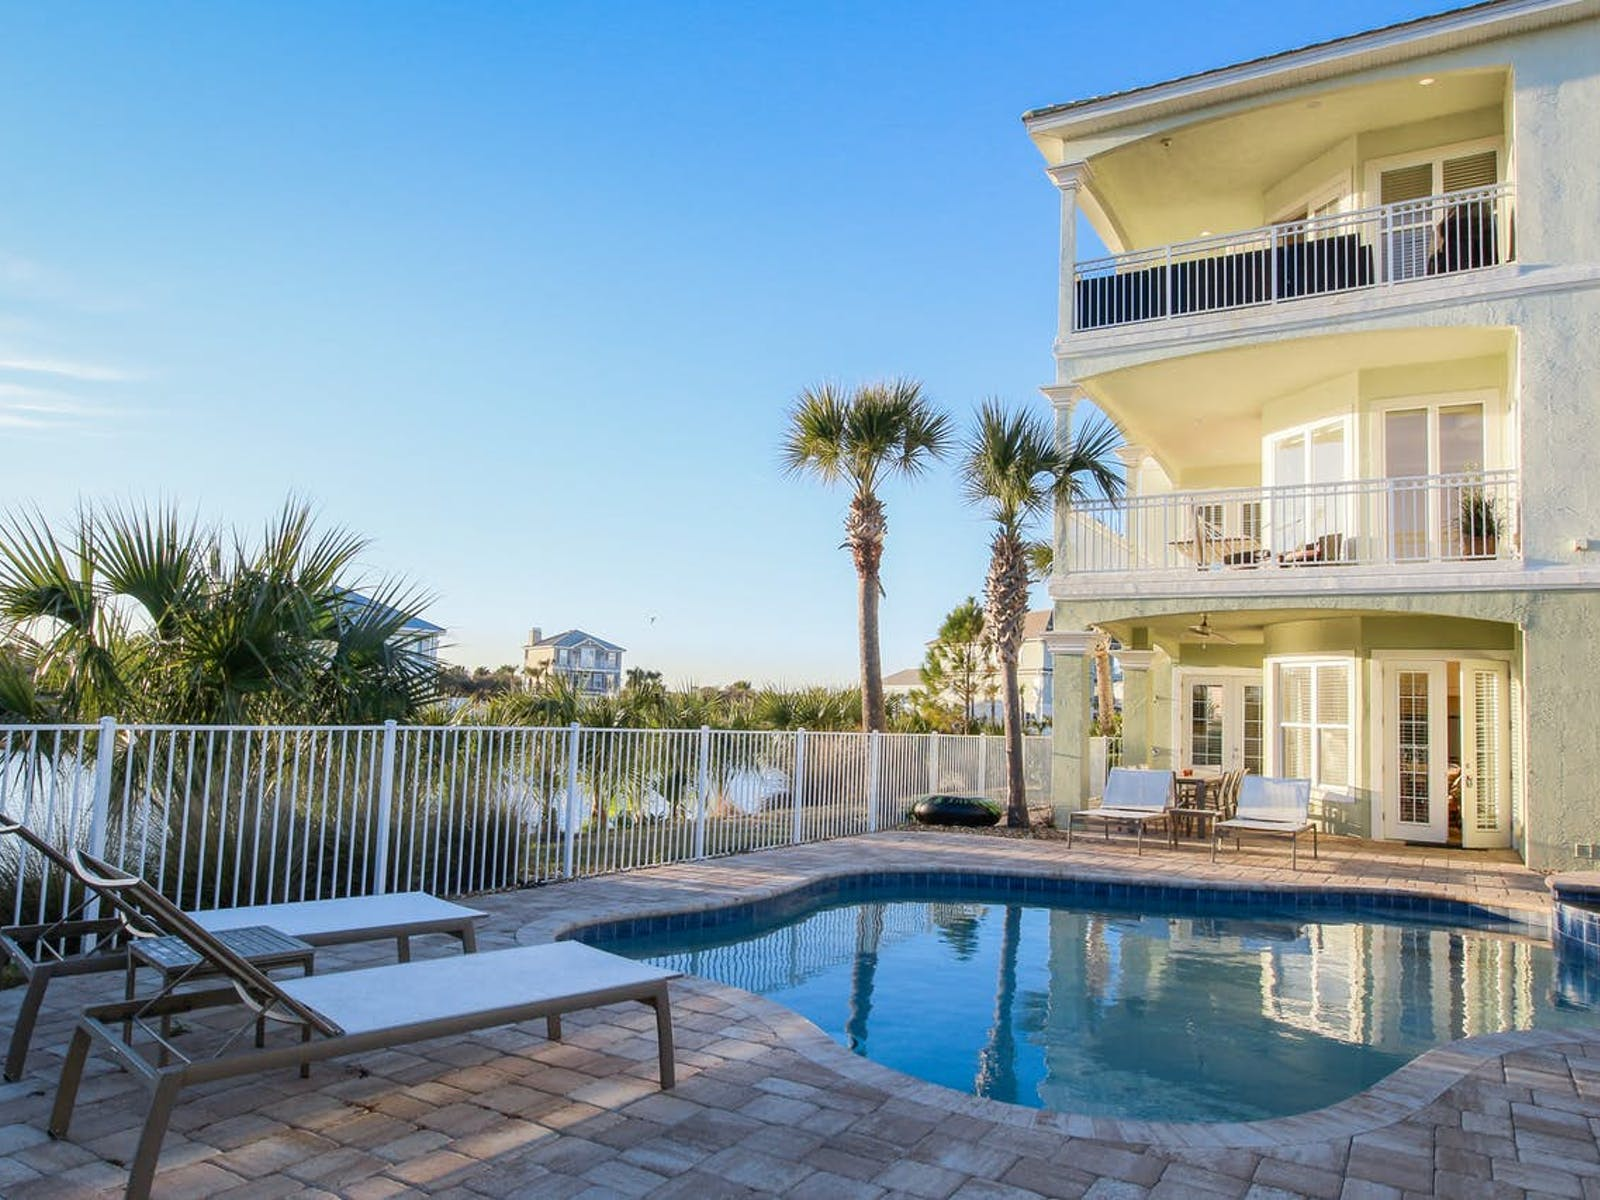 florida vacation rental with outdoor pool